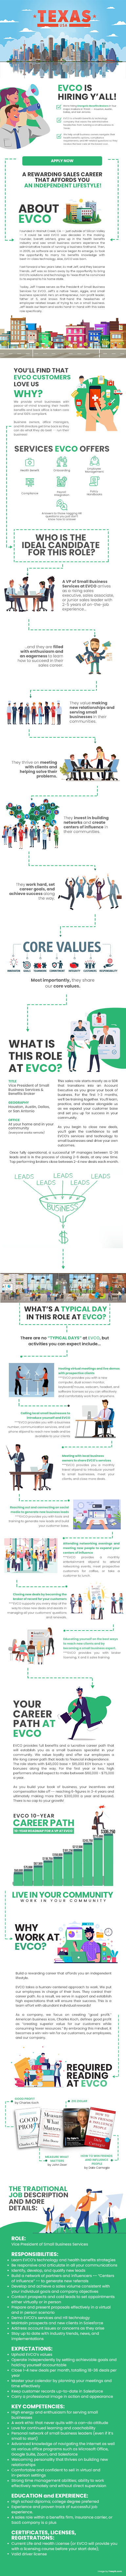 The Journey for a VP of Small Business Services at EVCO